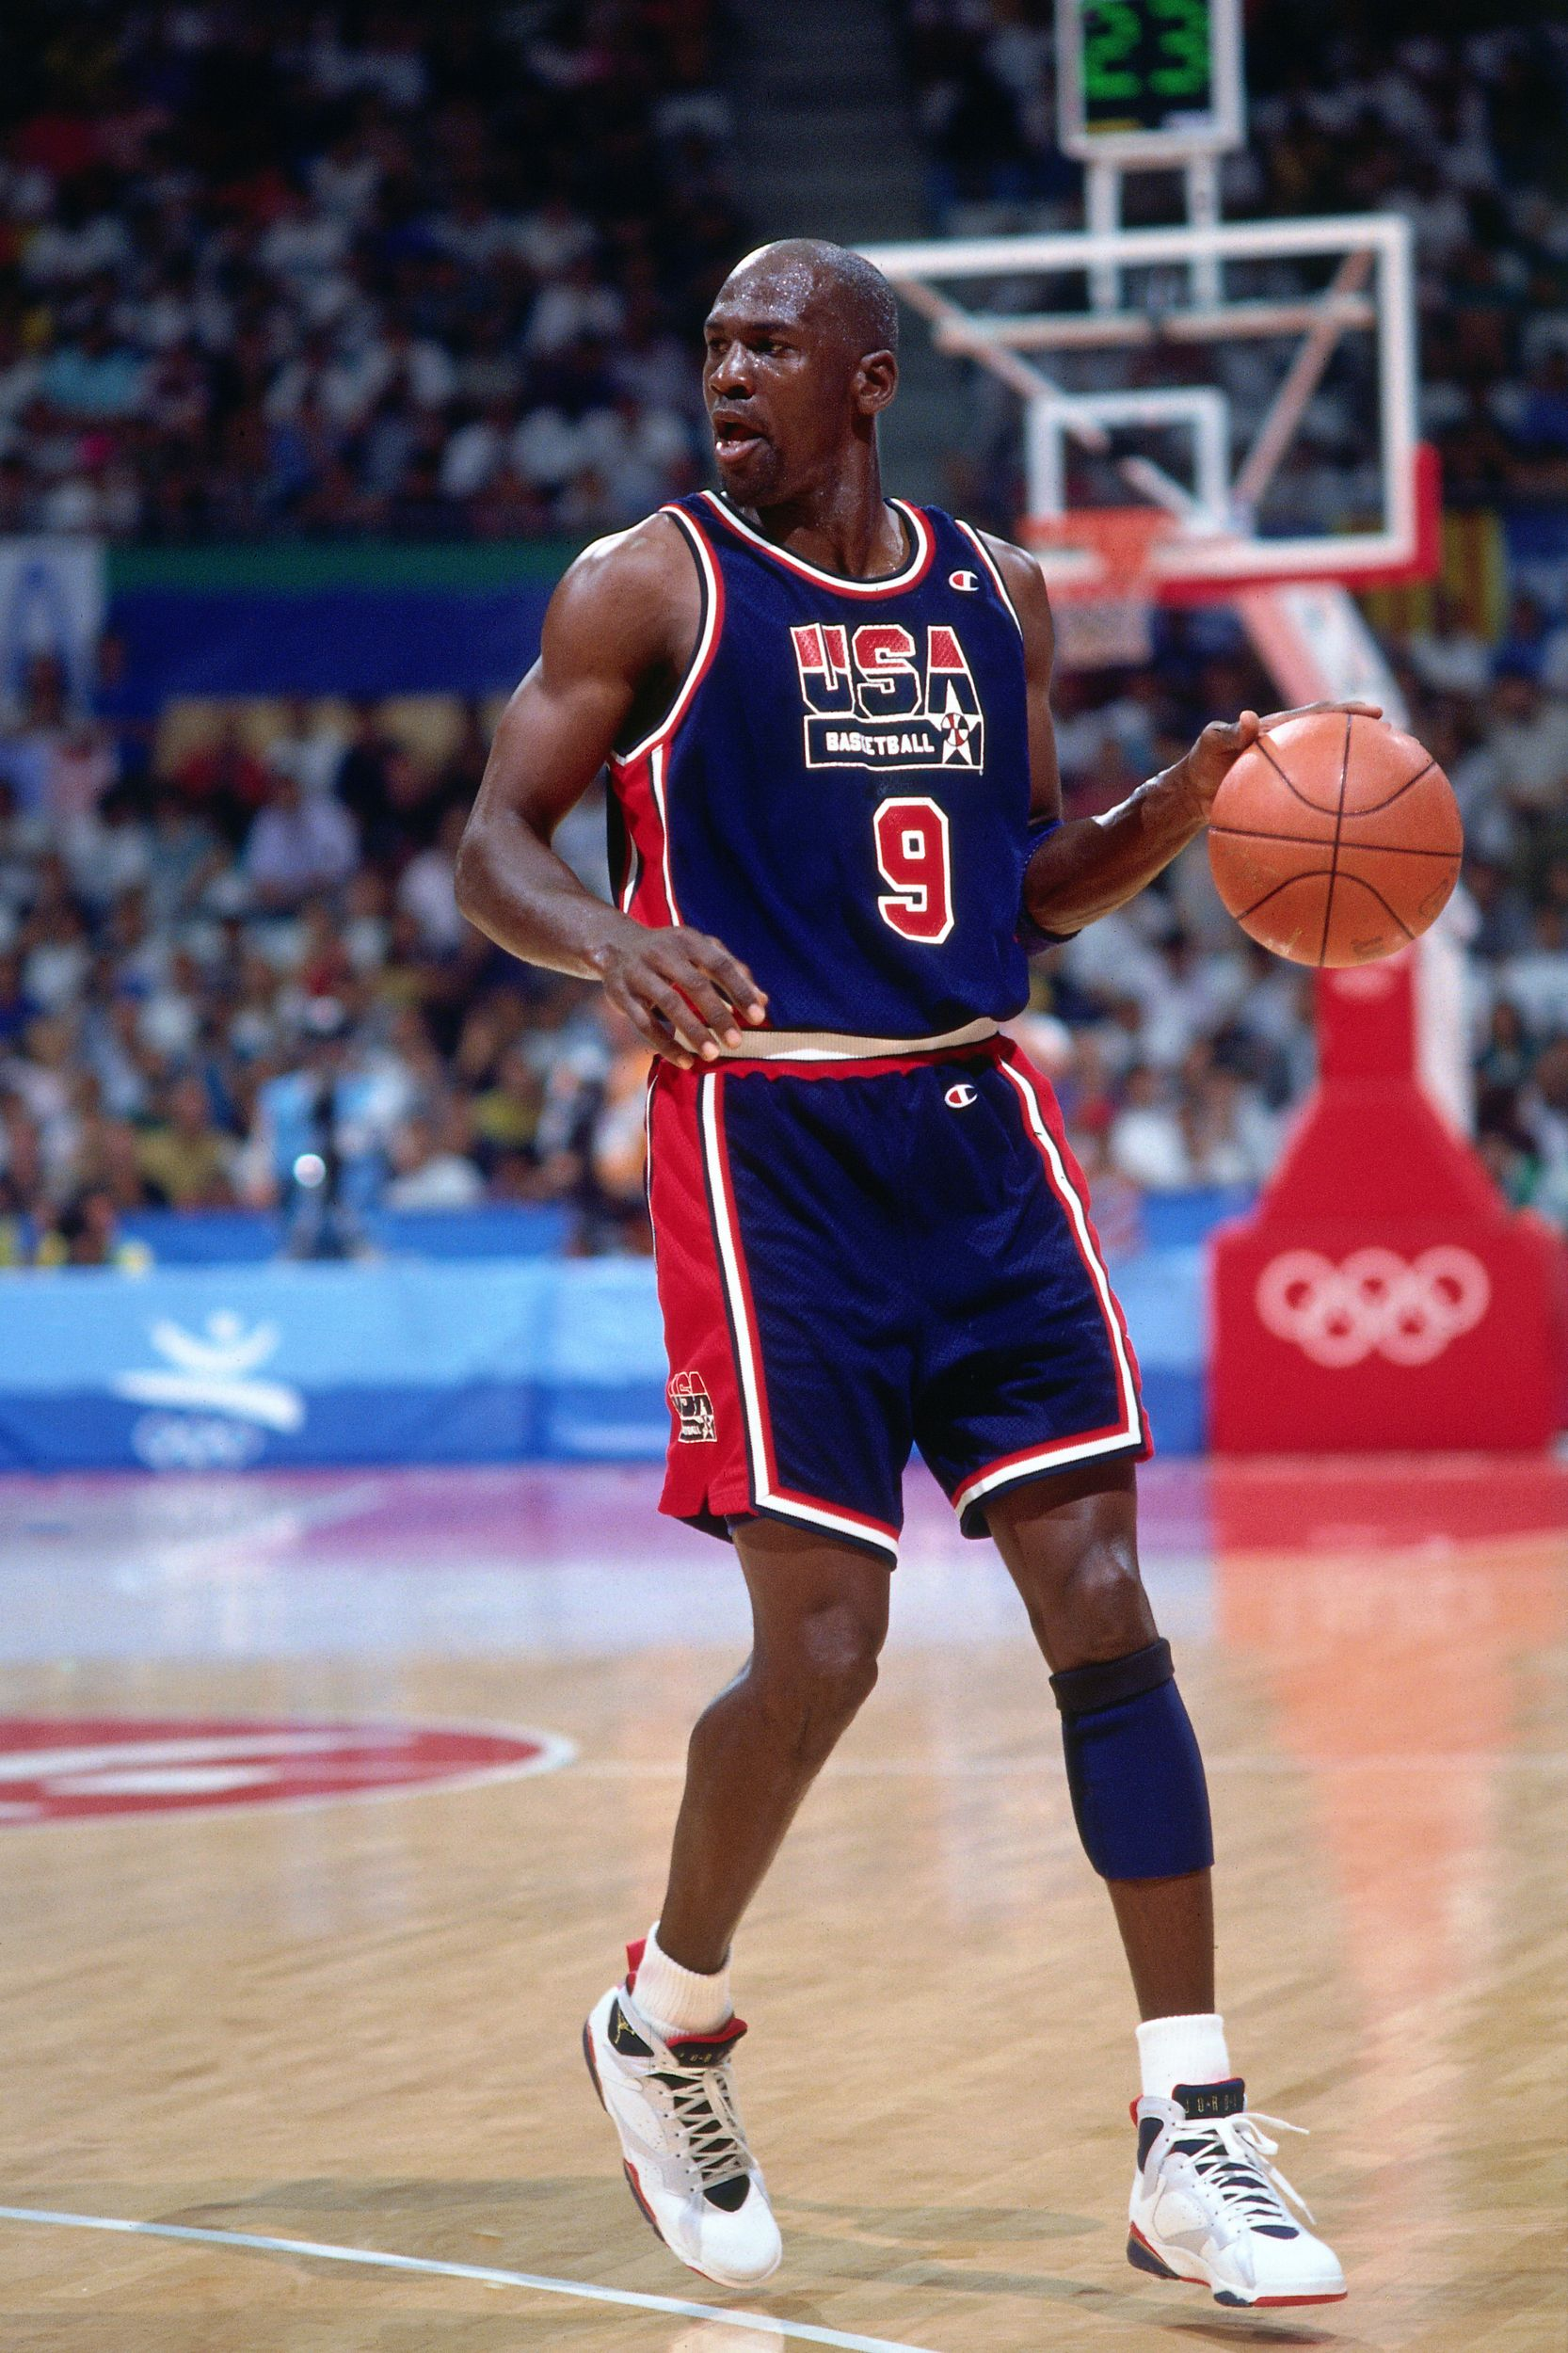 fdaa98e667a6 Michael Jordan was the star of the Dream Team and the face of the NBA.  (Photo by Andrew D. Bernstein NBAE via Getty Images) via  AOL Lifestyle…